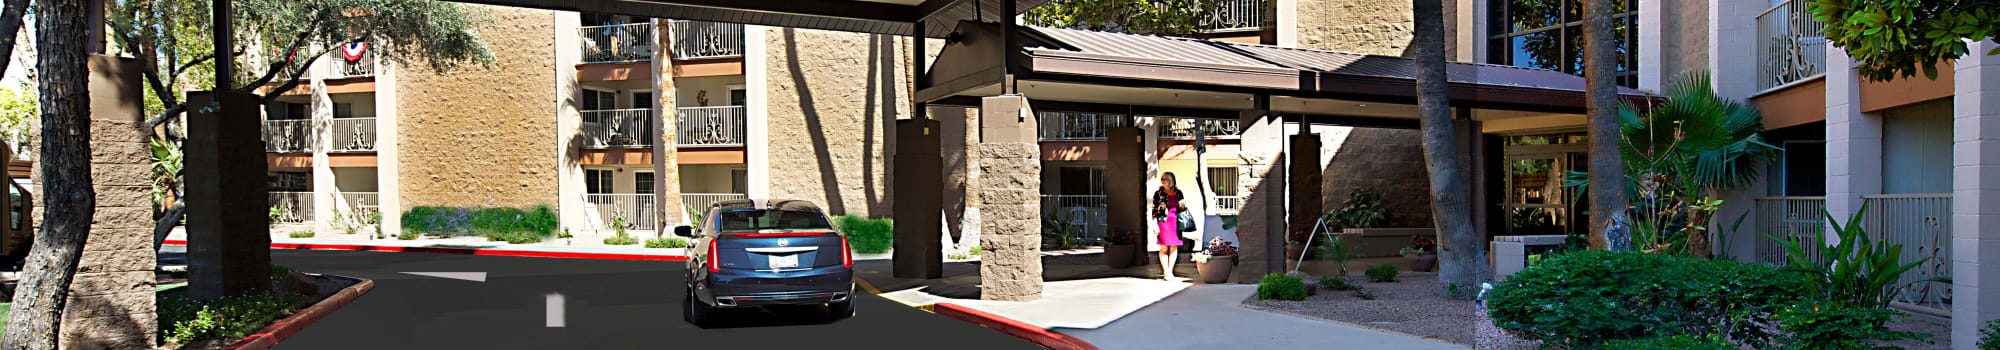 Services at Bella Vista Senior Living in Mesa, Arizona